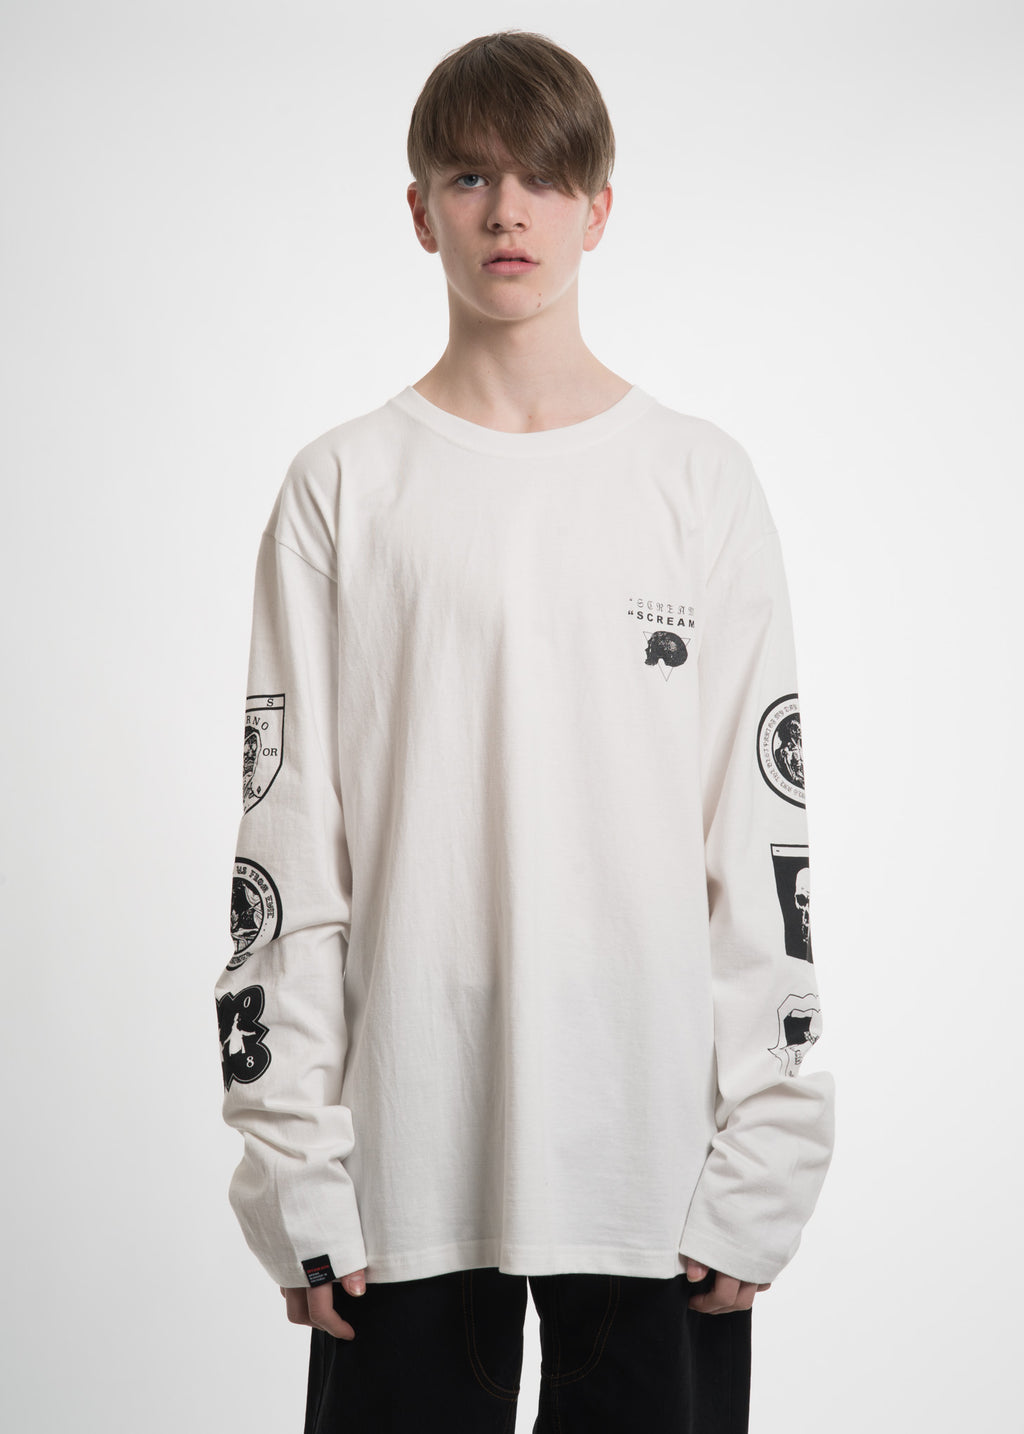 White Graphic L/S T-Shirt